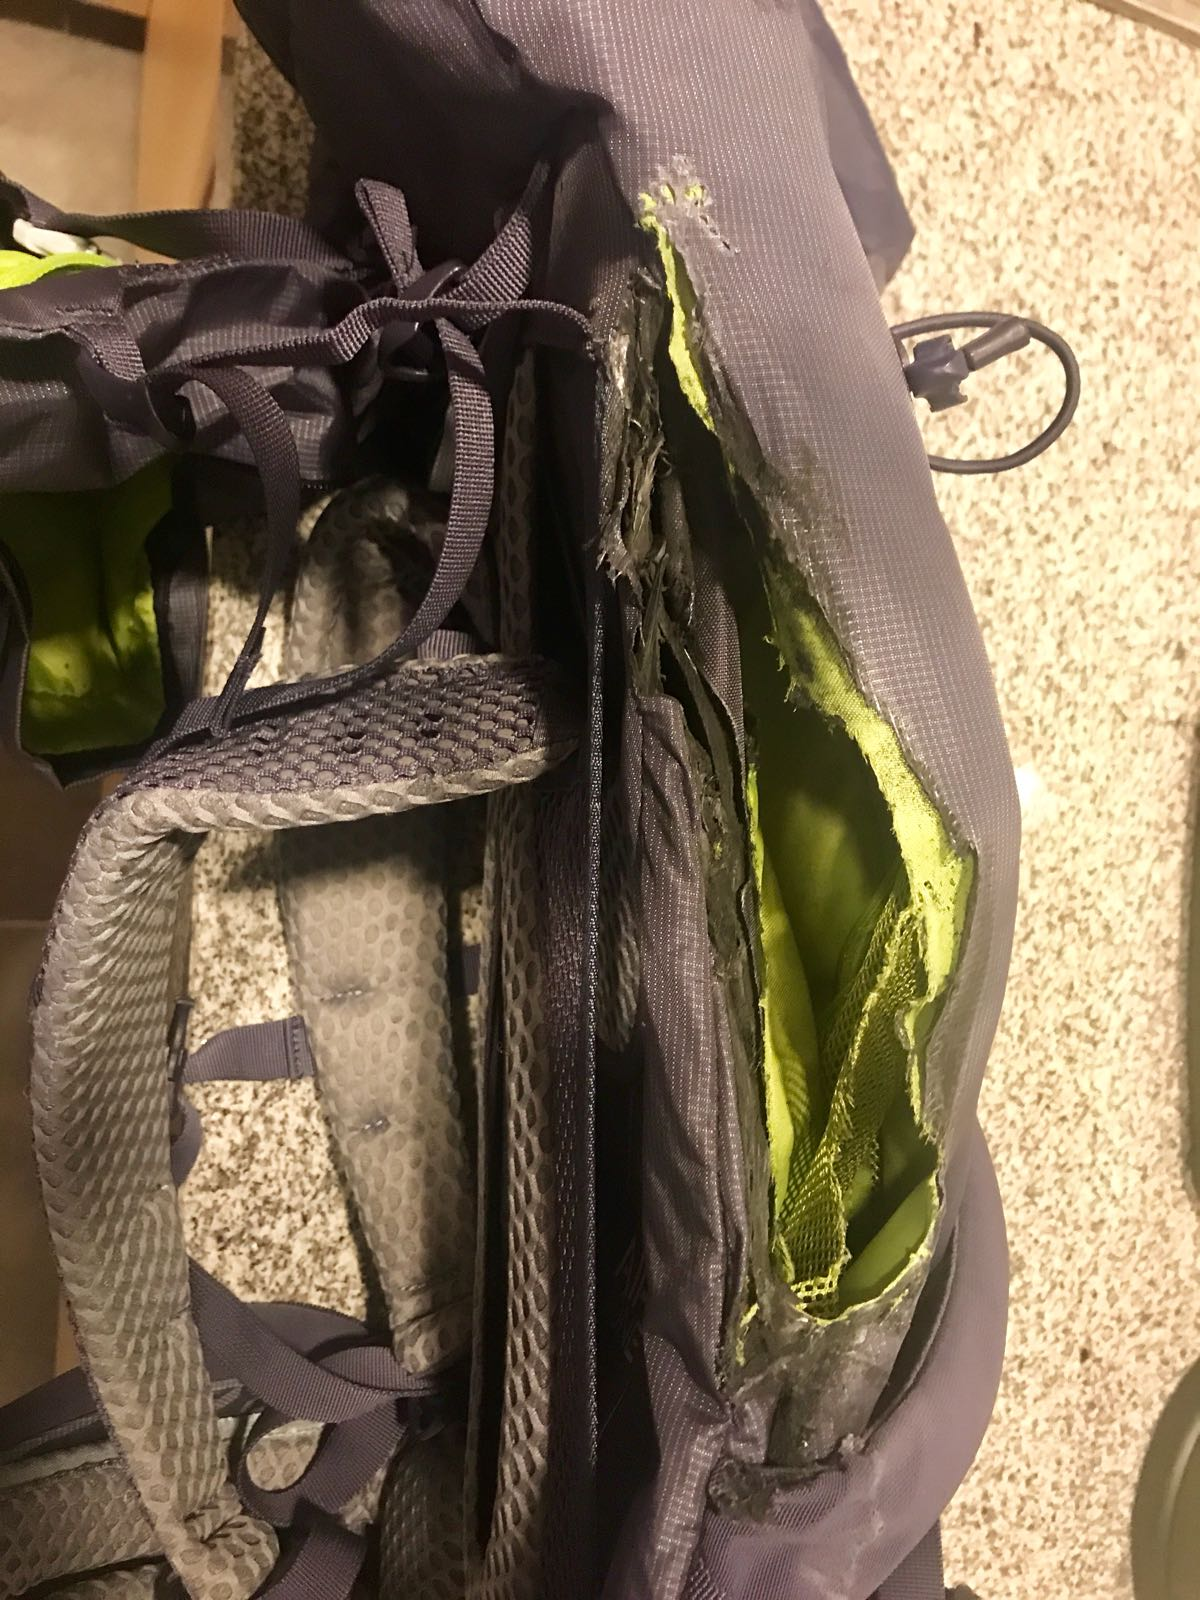 Roz's rucksack, having melted a bit in a 40 degree wash